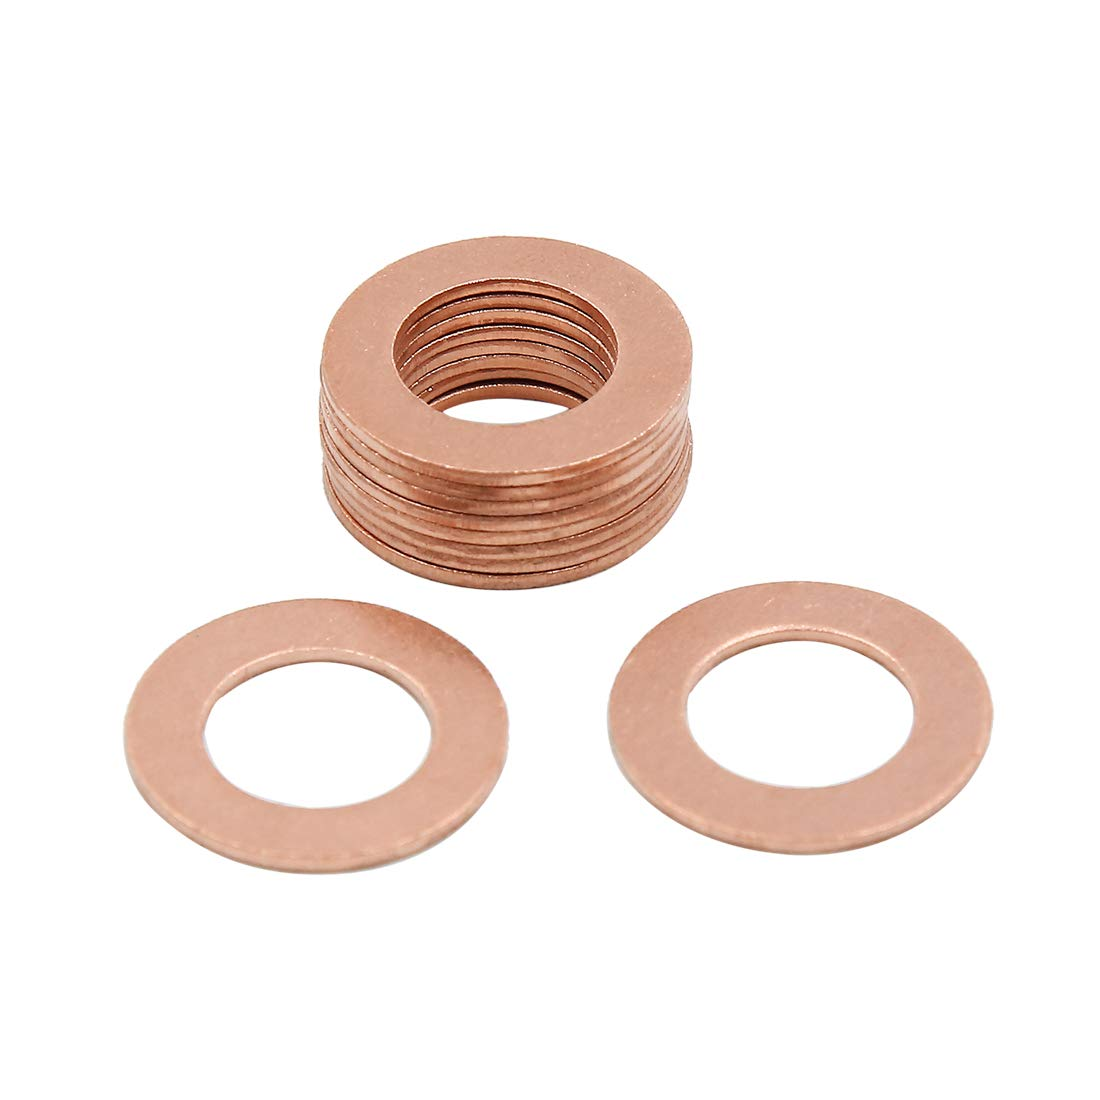 X AUTOHAUX 12mm Inner Dia Copper Crush Washers Flat Car Sealing Gaskets Plate Rings 10pcs